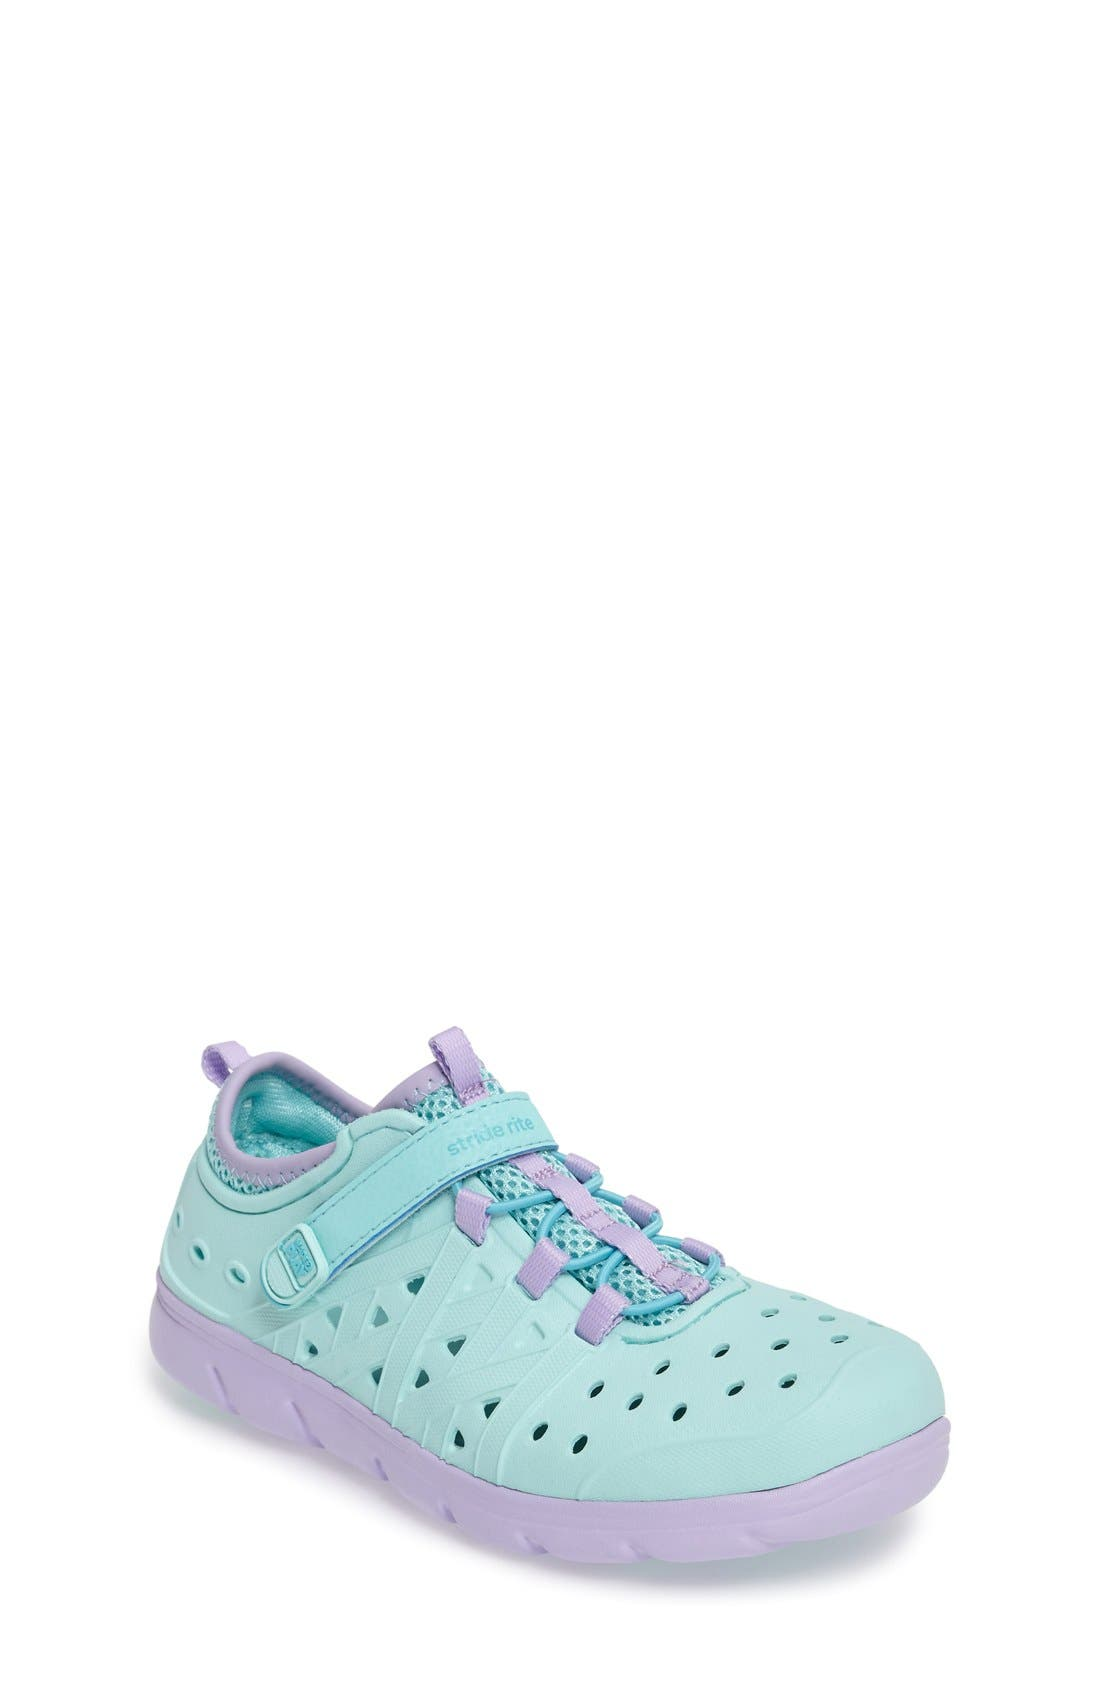 Made2Play<sup>®</sup> Phibian Sneaker,                             Main thumbnail 1, color,                             Turquoise